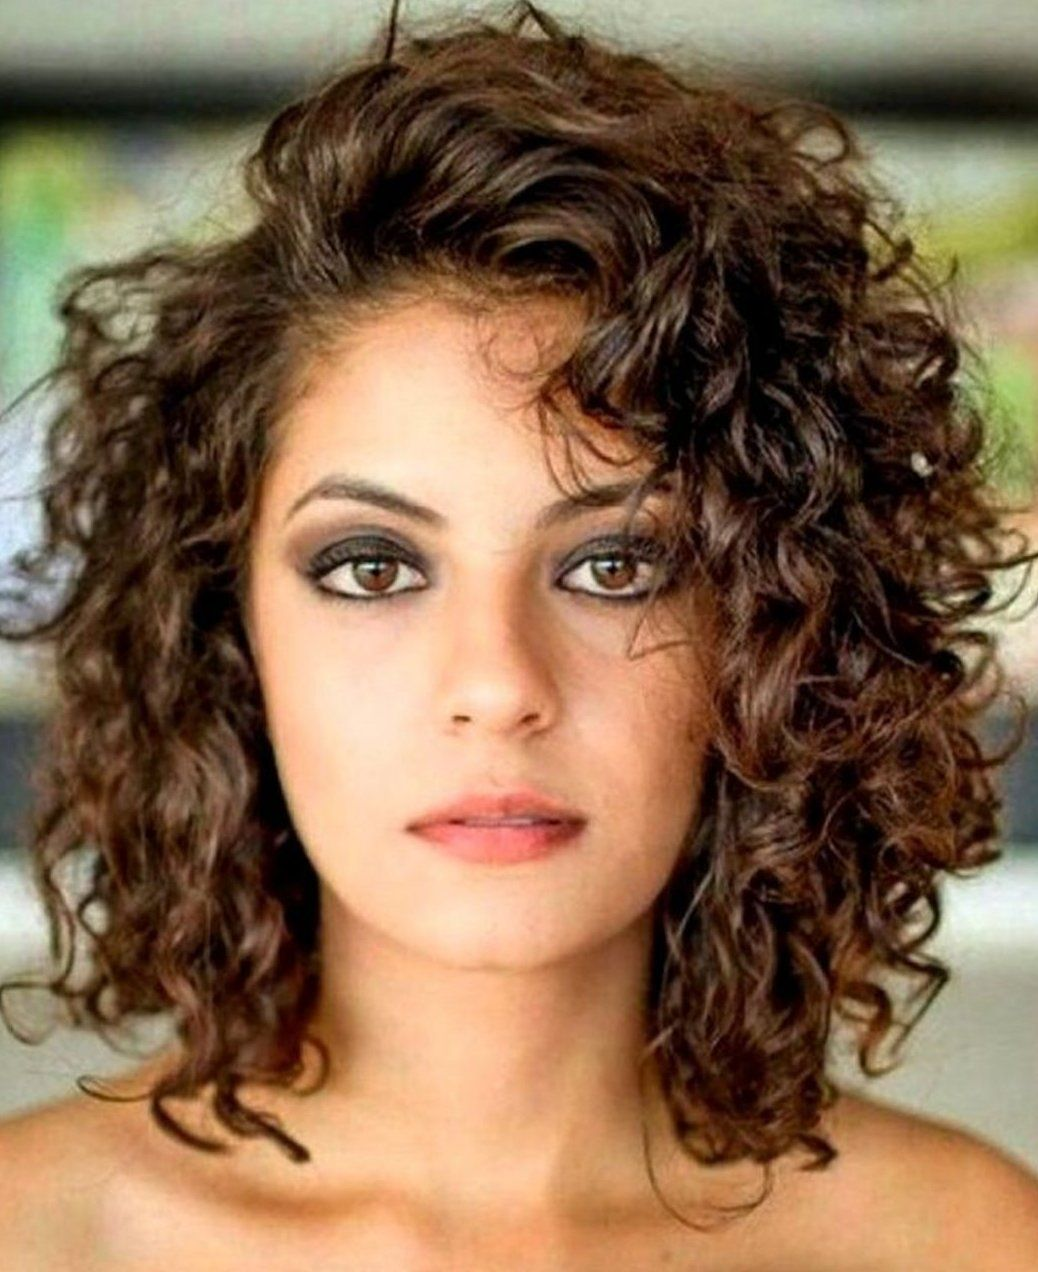 15 Chic Curly Hairstyles To Make You Look More Charming Until now, curly  hairstyles still have th… in 2020 | Curly hair styles, Medium curly hair  styles, Medium hair styles